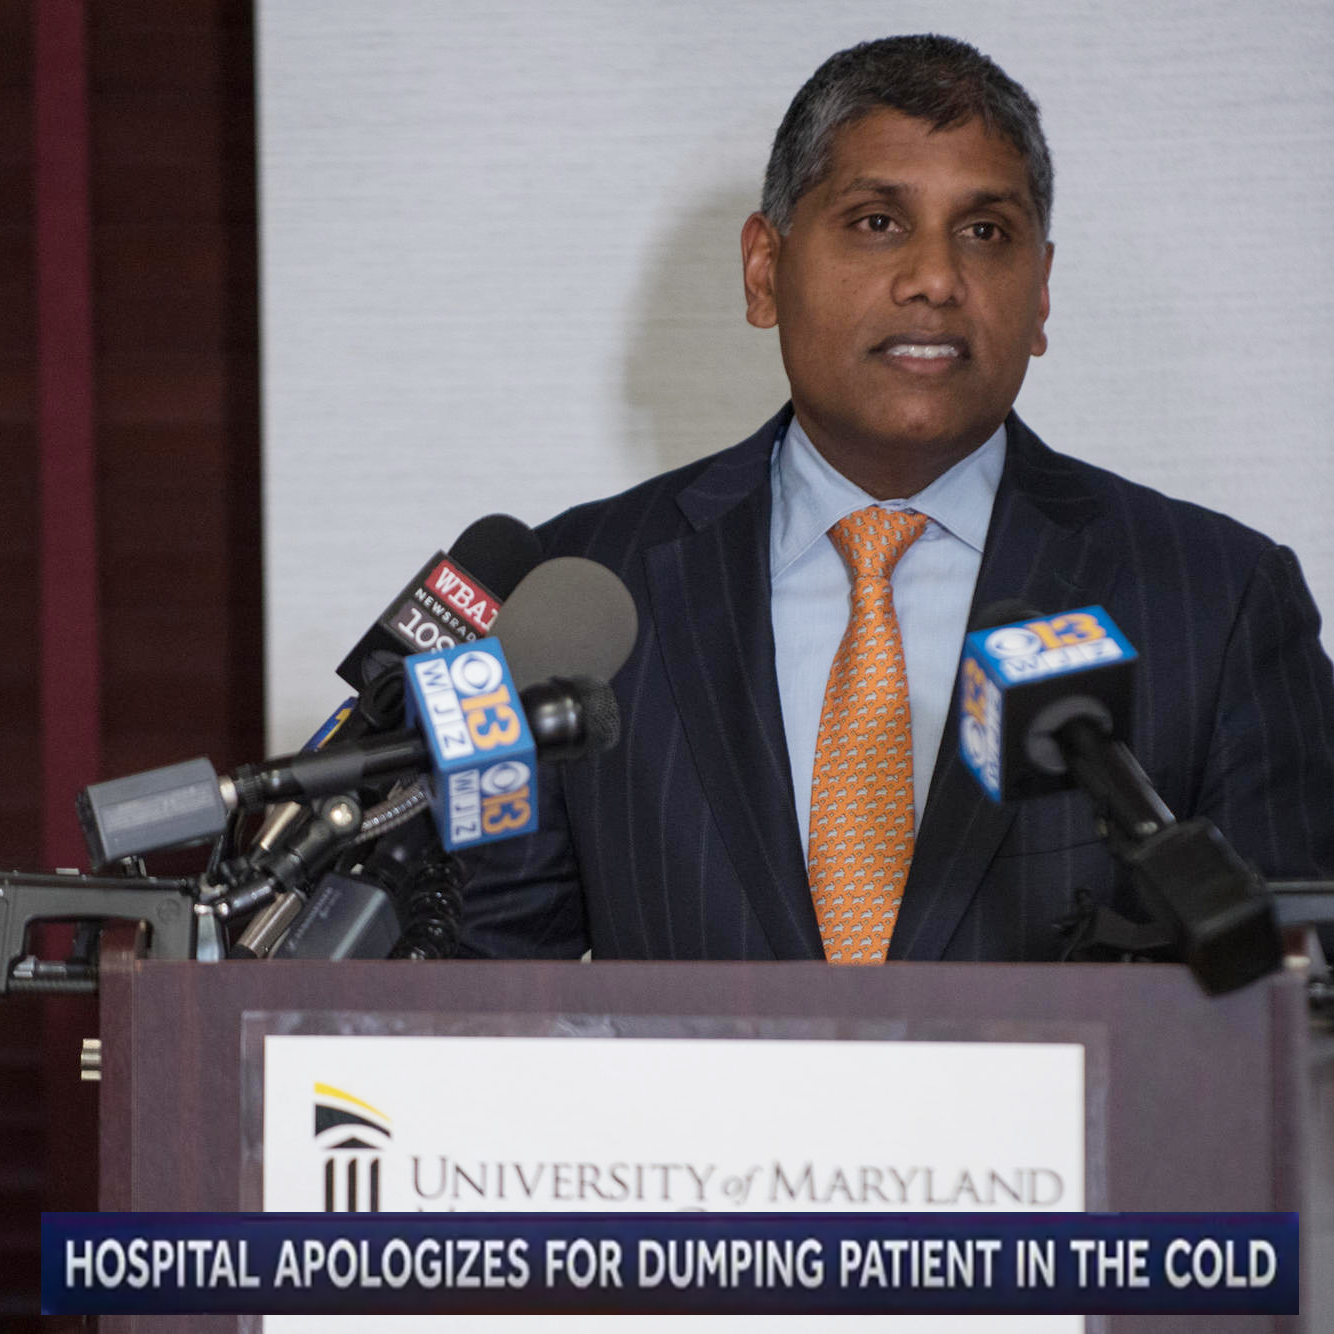 Baltimore Hospital Accused Of Patient Dumping: Five Things You Need To Know To Avoid Hospital Dumping